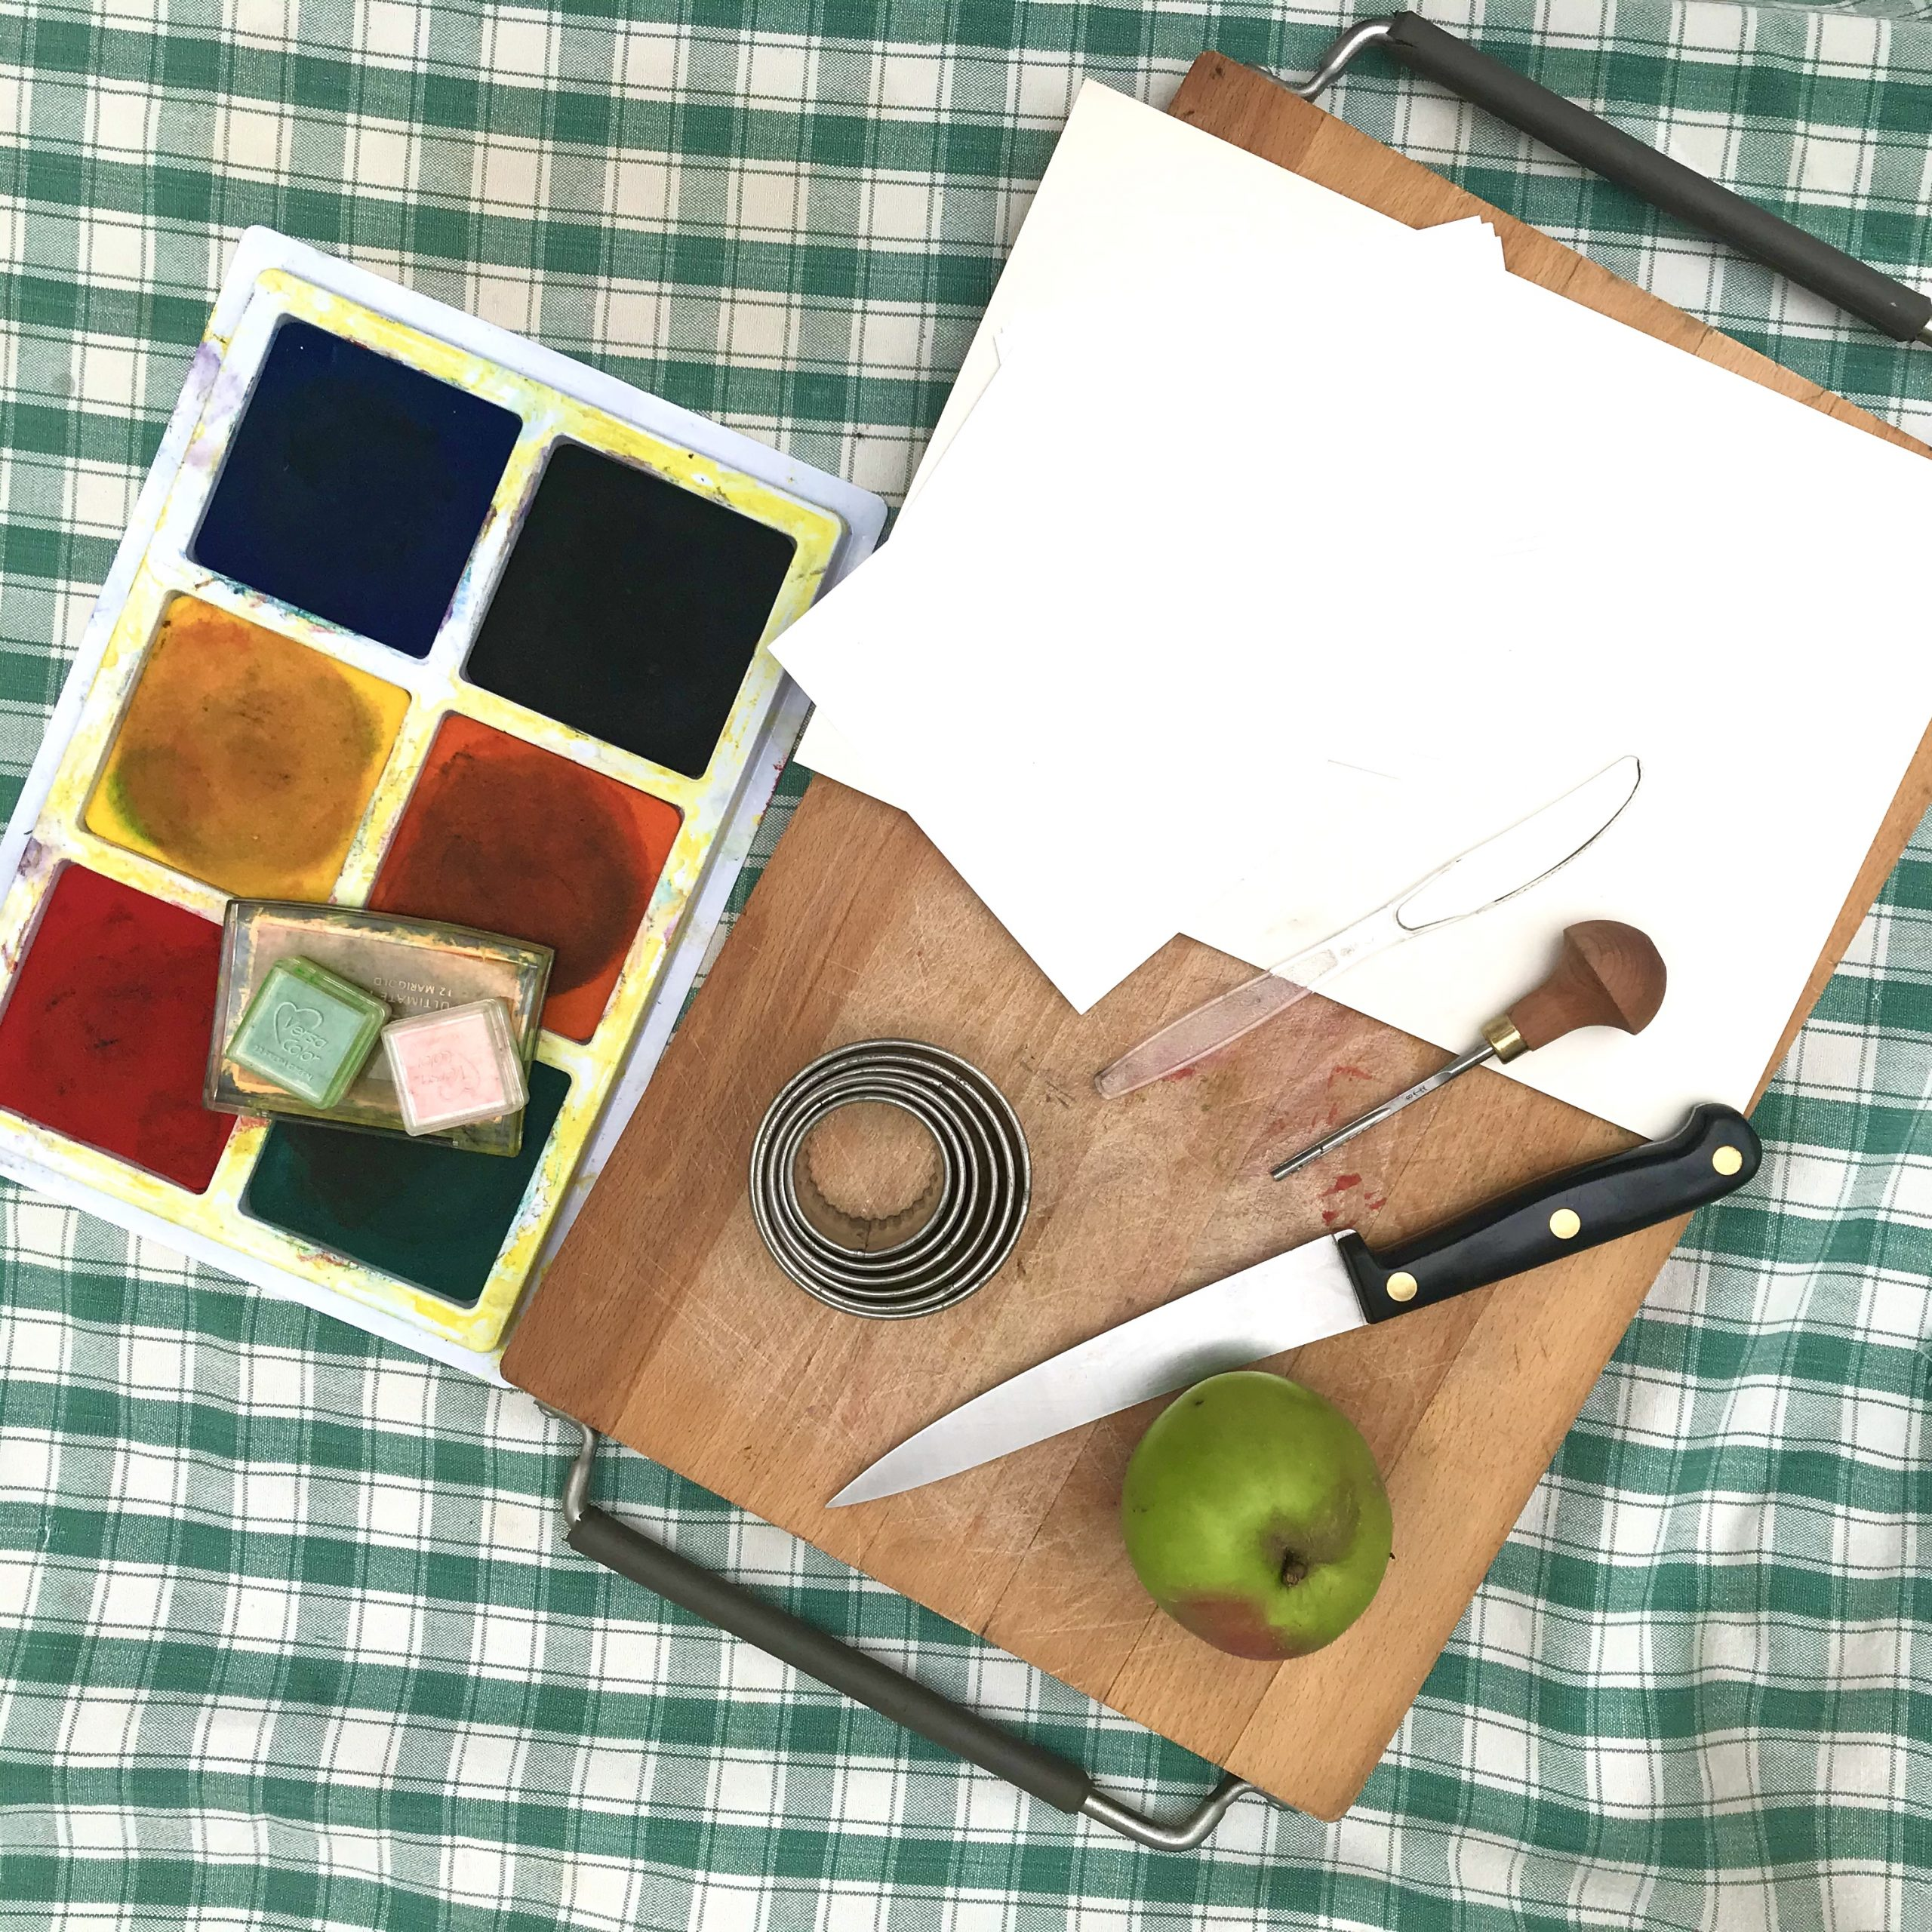 A chopping board, with apple, knife and paper, and a paint palette